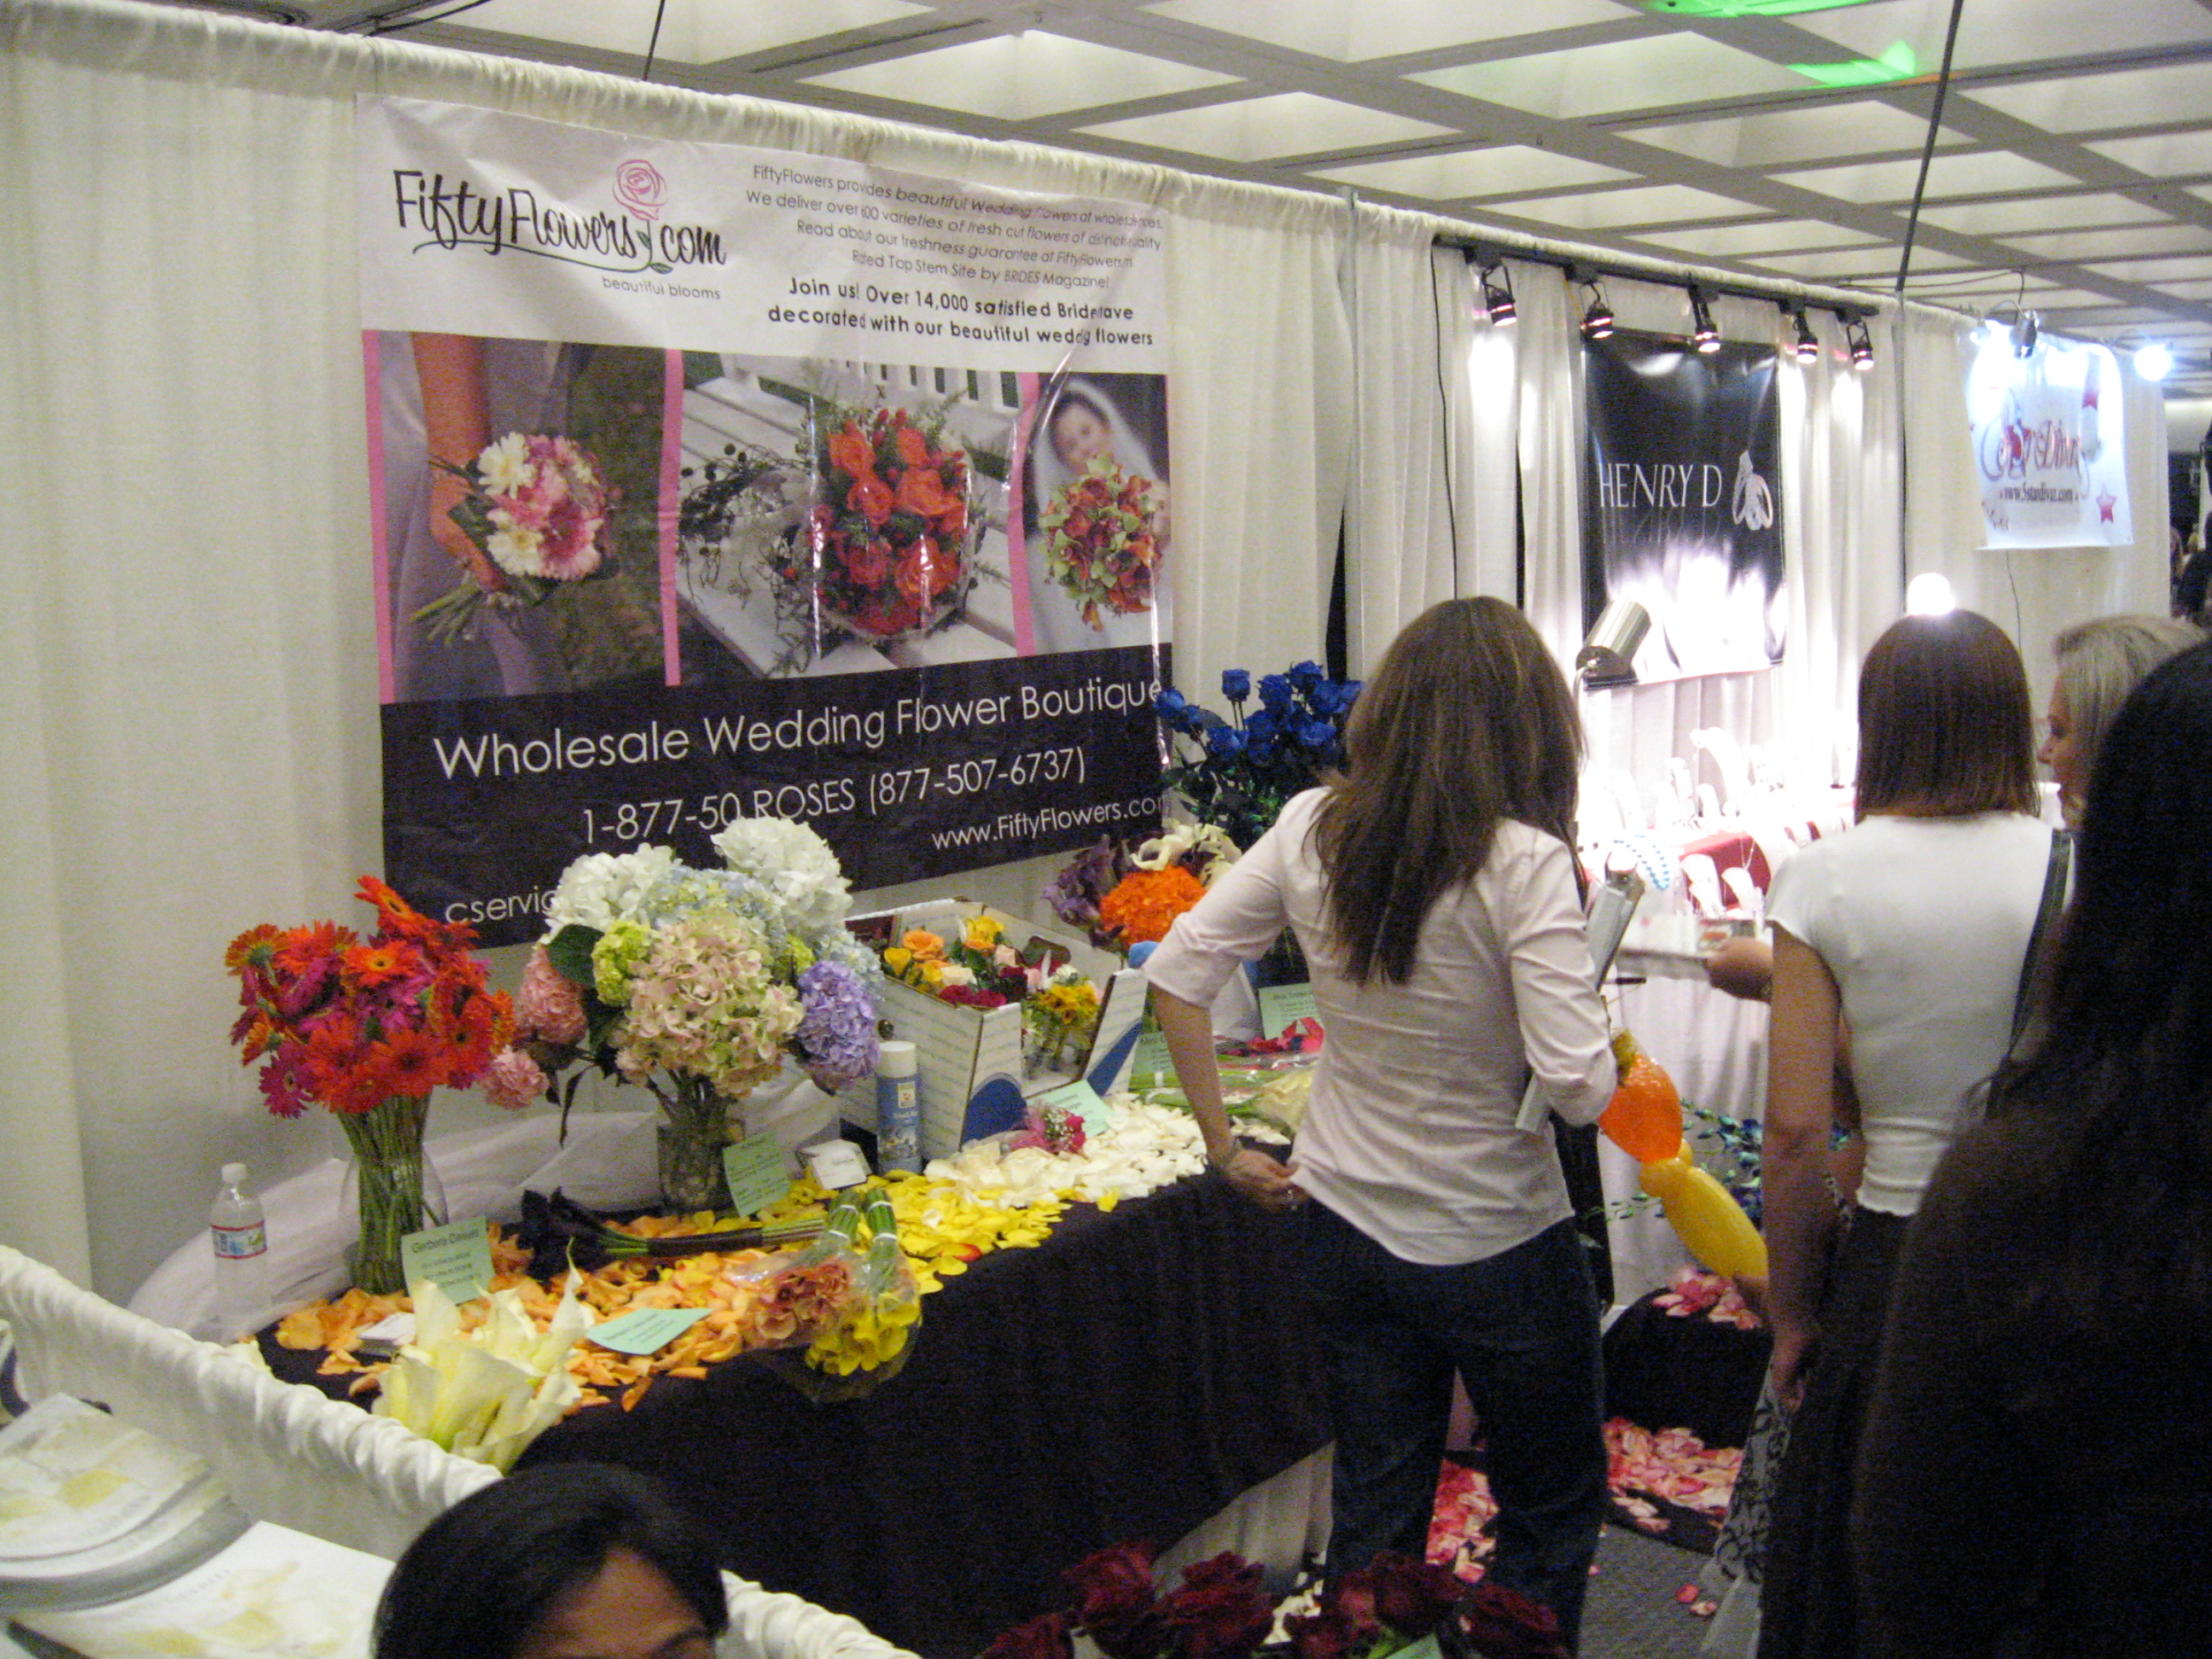 wholesale wedding flowers delivered to you